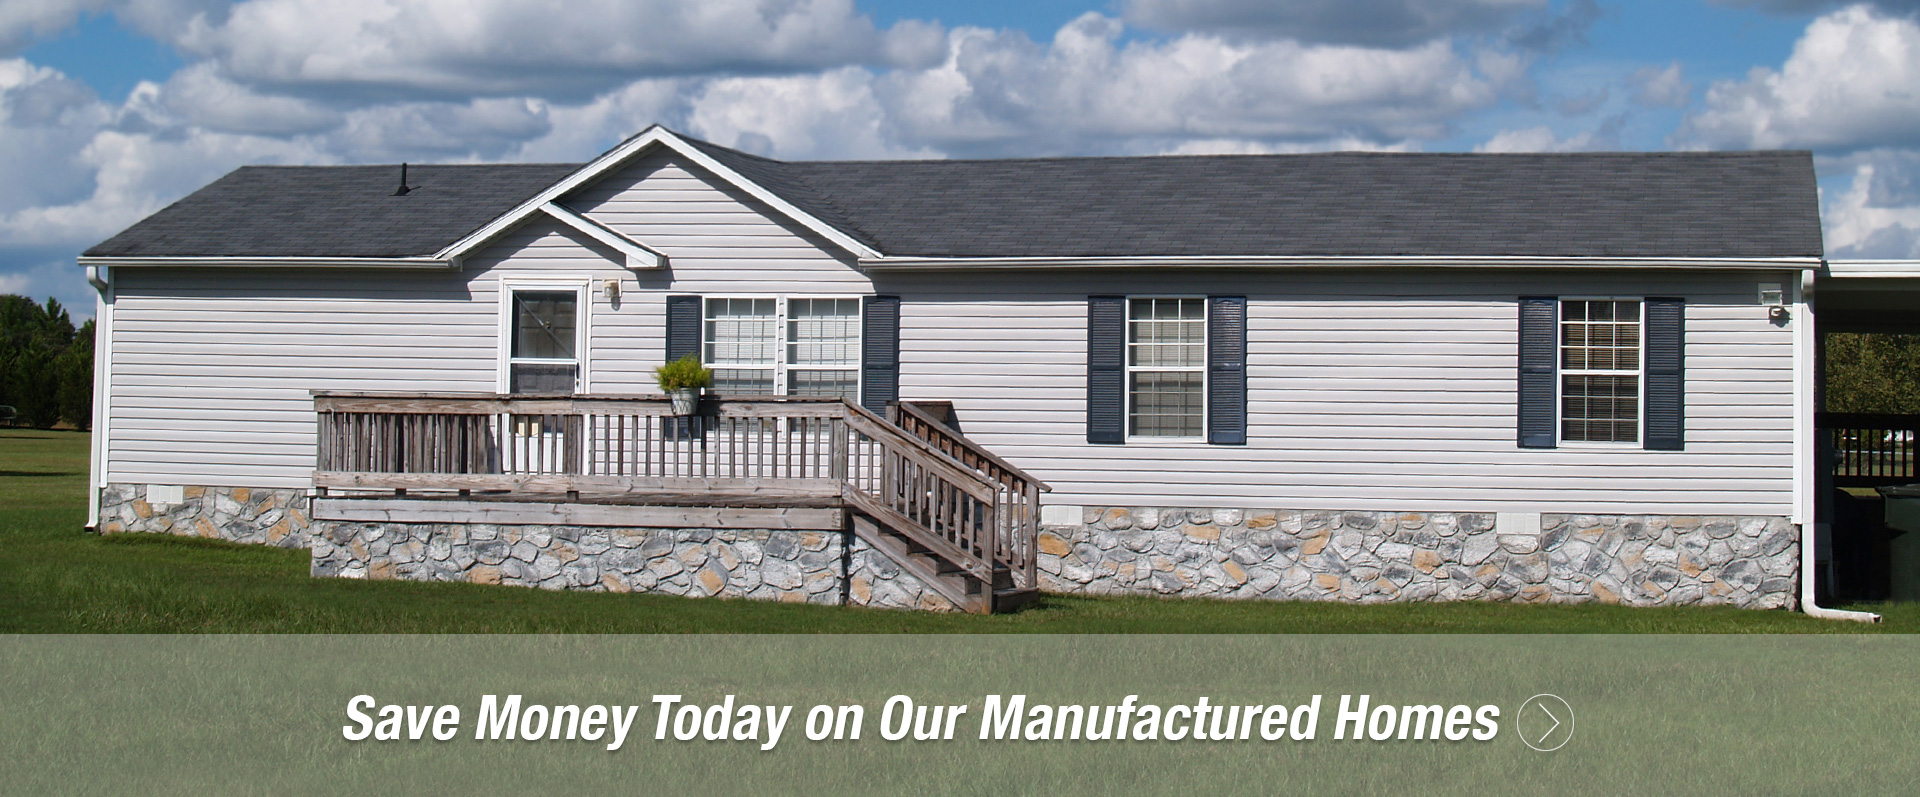 Angelina Manufactured Housing Inc: Lufkin, TX: RVs & Mobile Homes